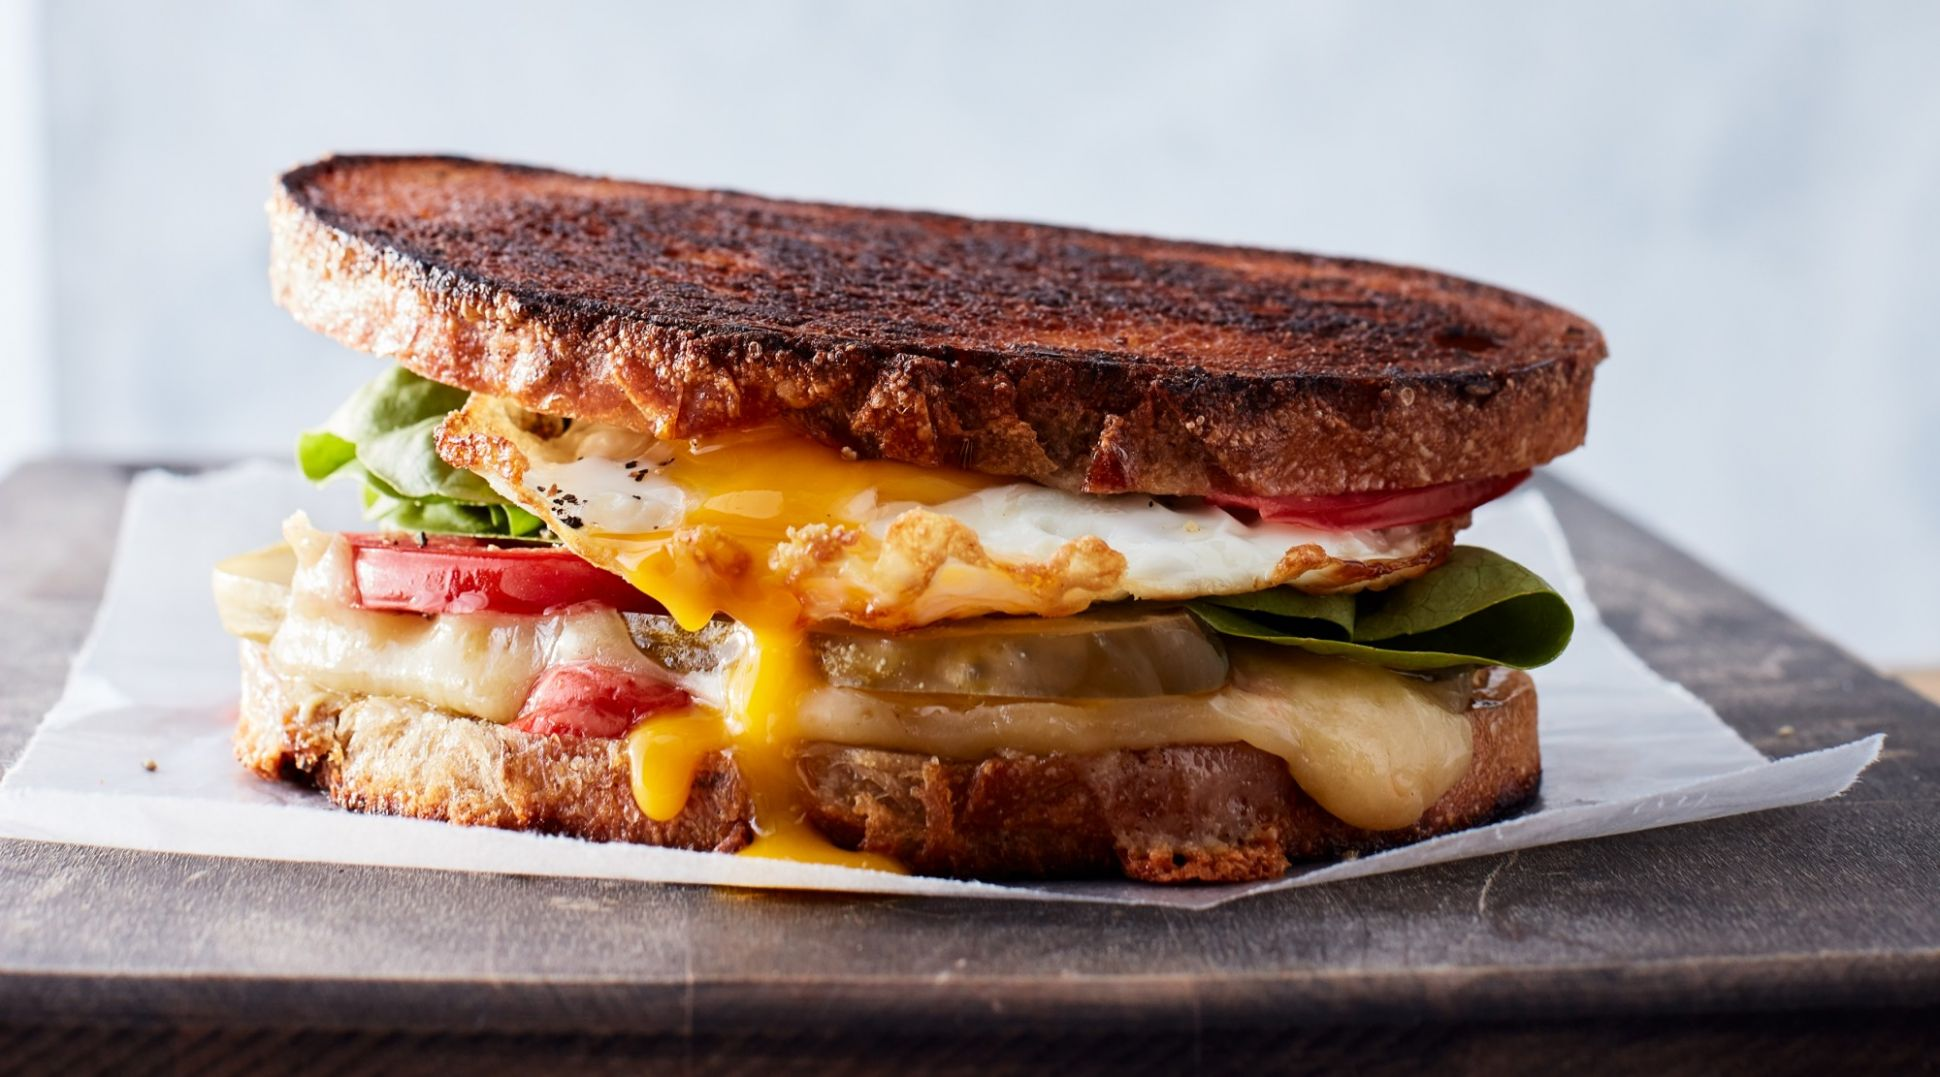 My Ultimate Breakfast Sandwich